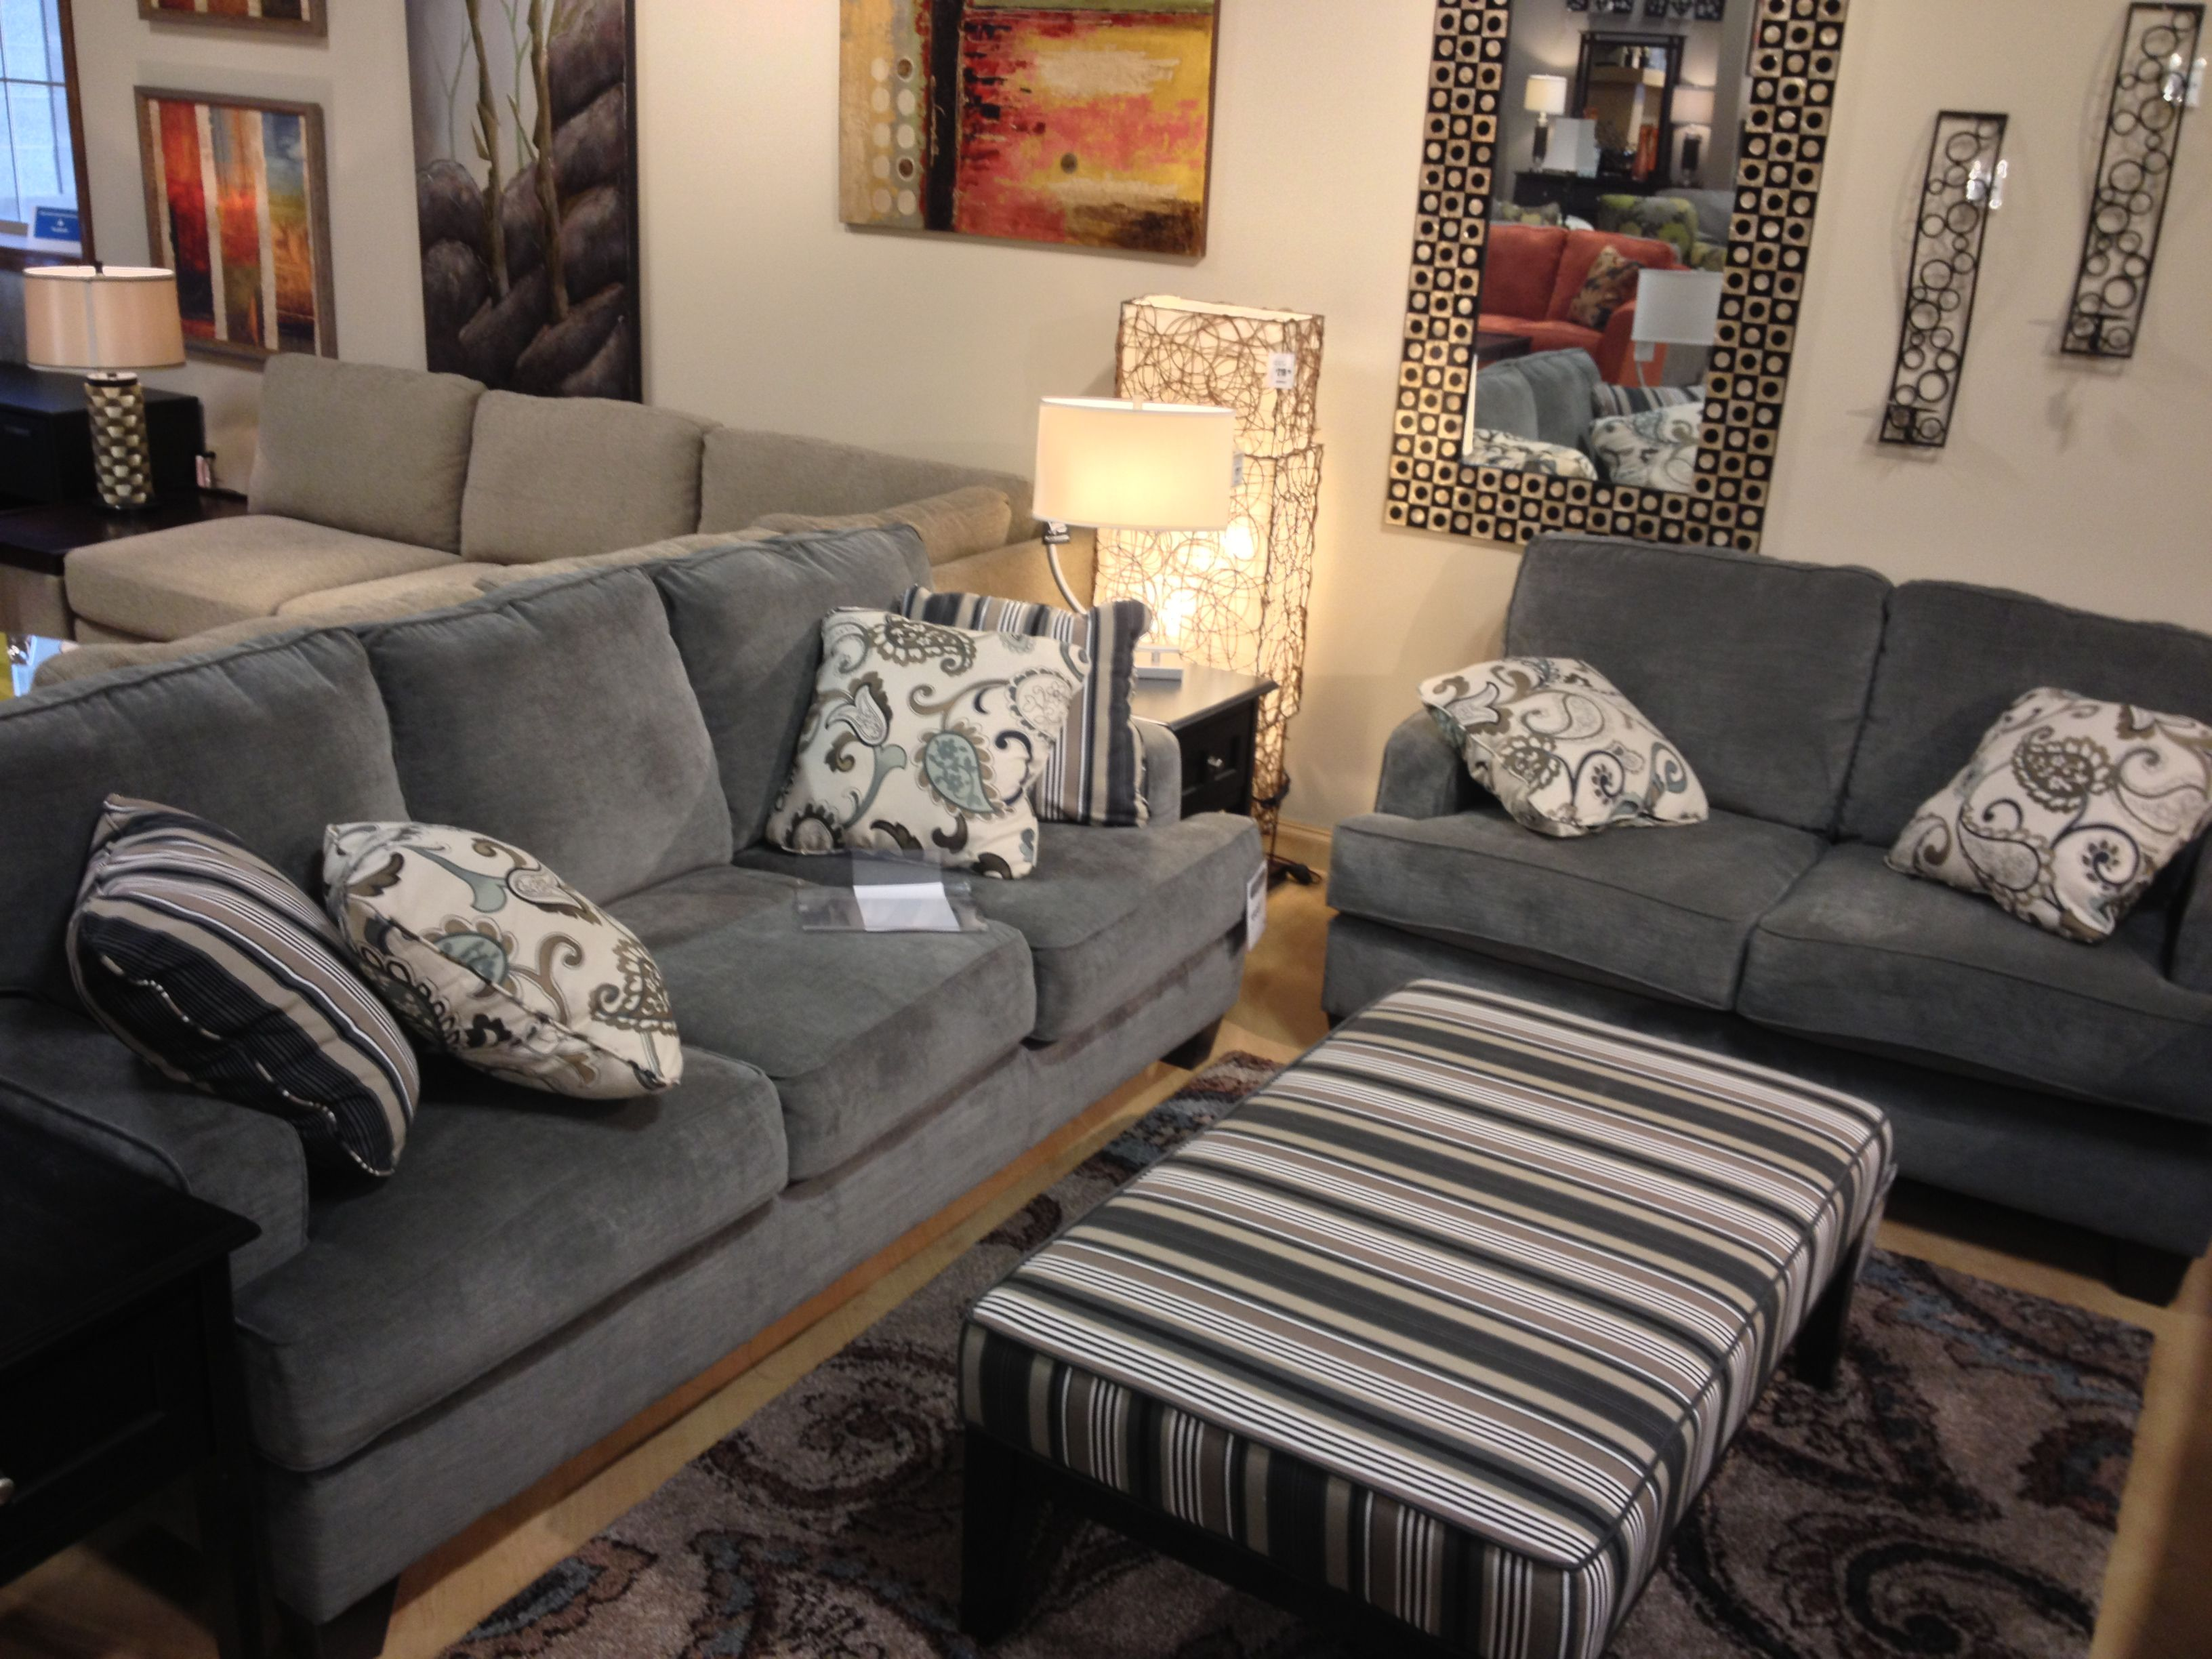 navasota charcoal sofa ashley furniture thomas the tank engine flip out bed yvette steel couch and loveseat at